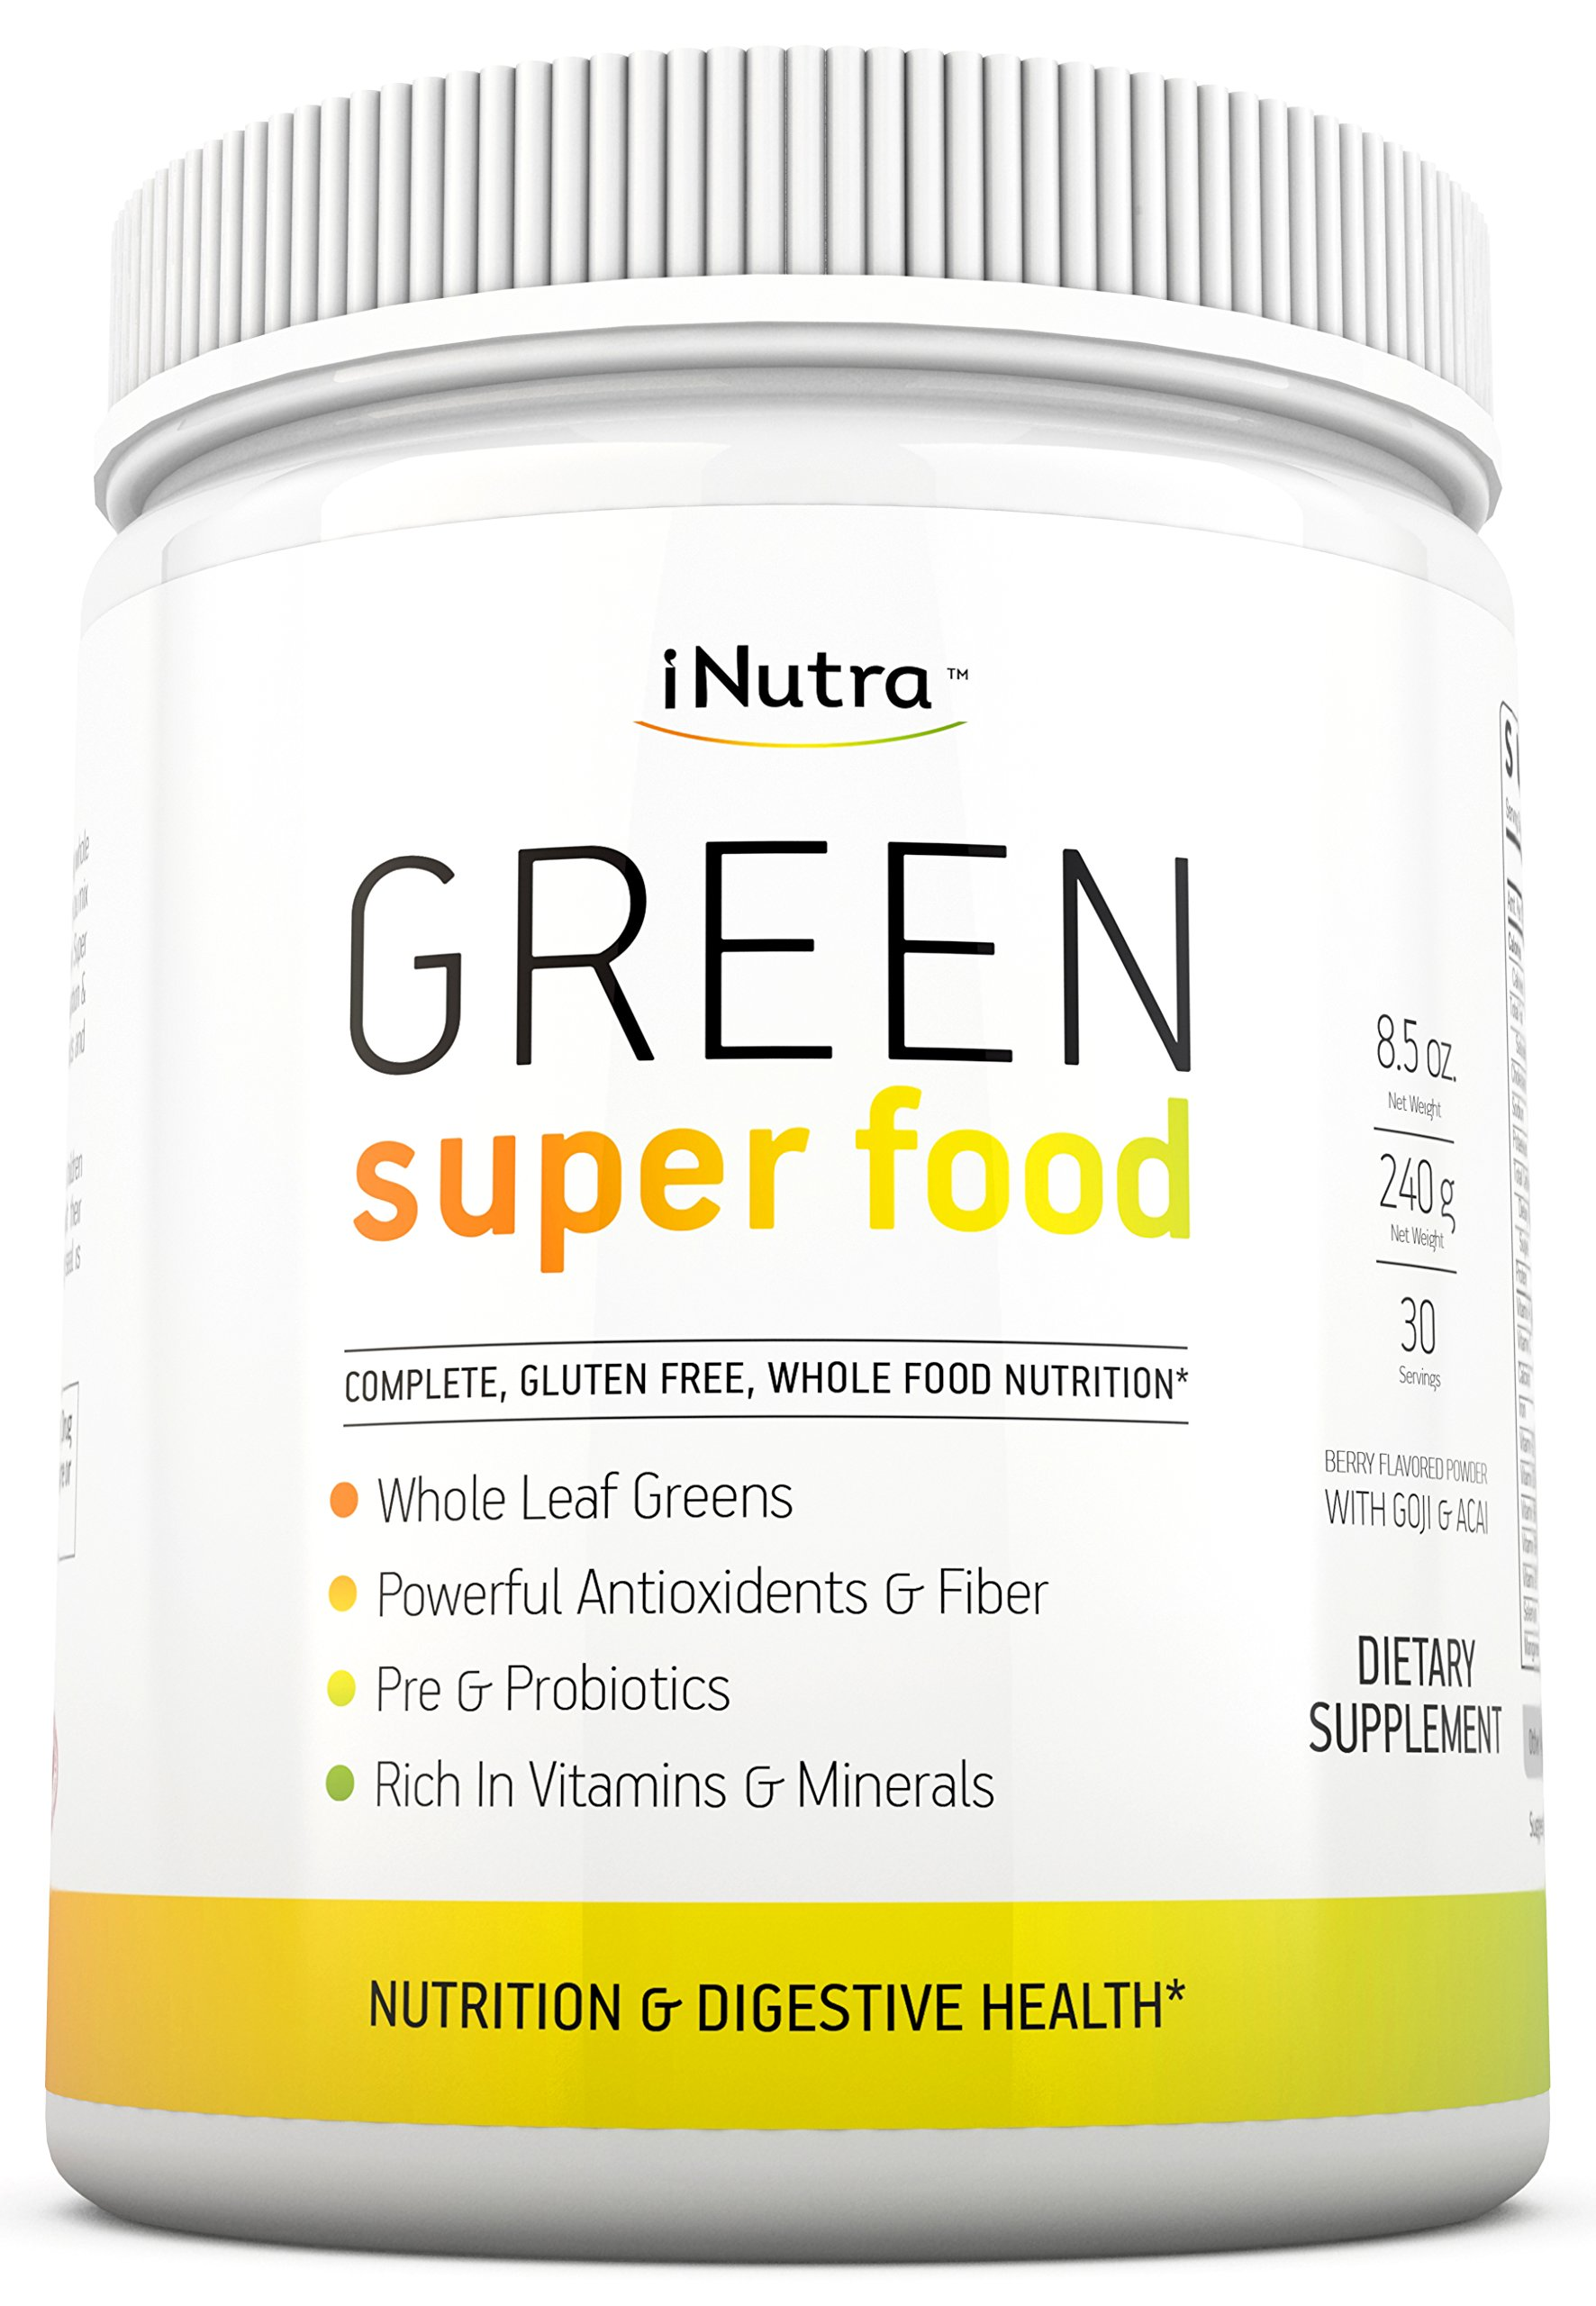 iNutra Green Super Food Dietary Supplement — Gluten Free, Vegan Whole Food Nutrition — Powerful Antioxidants and Fibers — Rich in Vitamins, Minerals and Probiotics